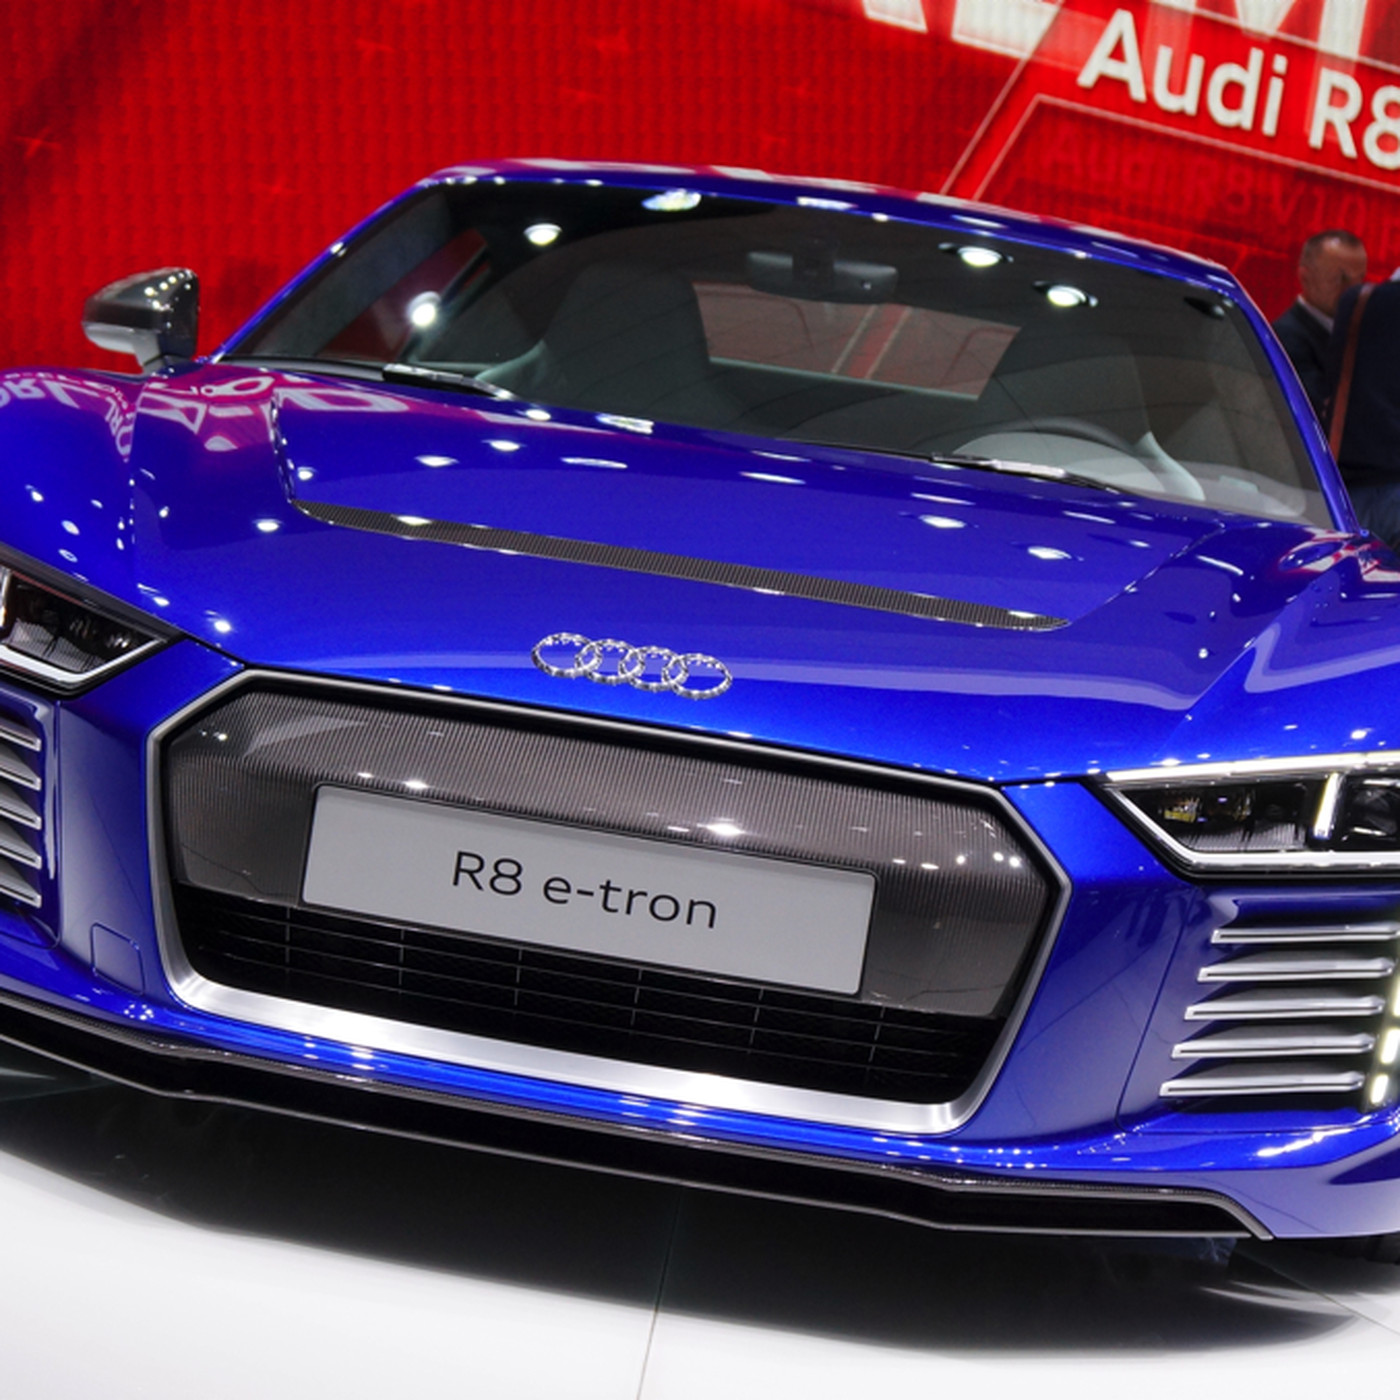 Audis Million Allelectric Supercar Is No More The Verge - Audi r8 etron